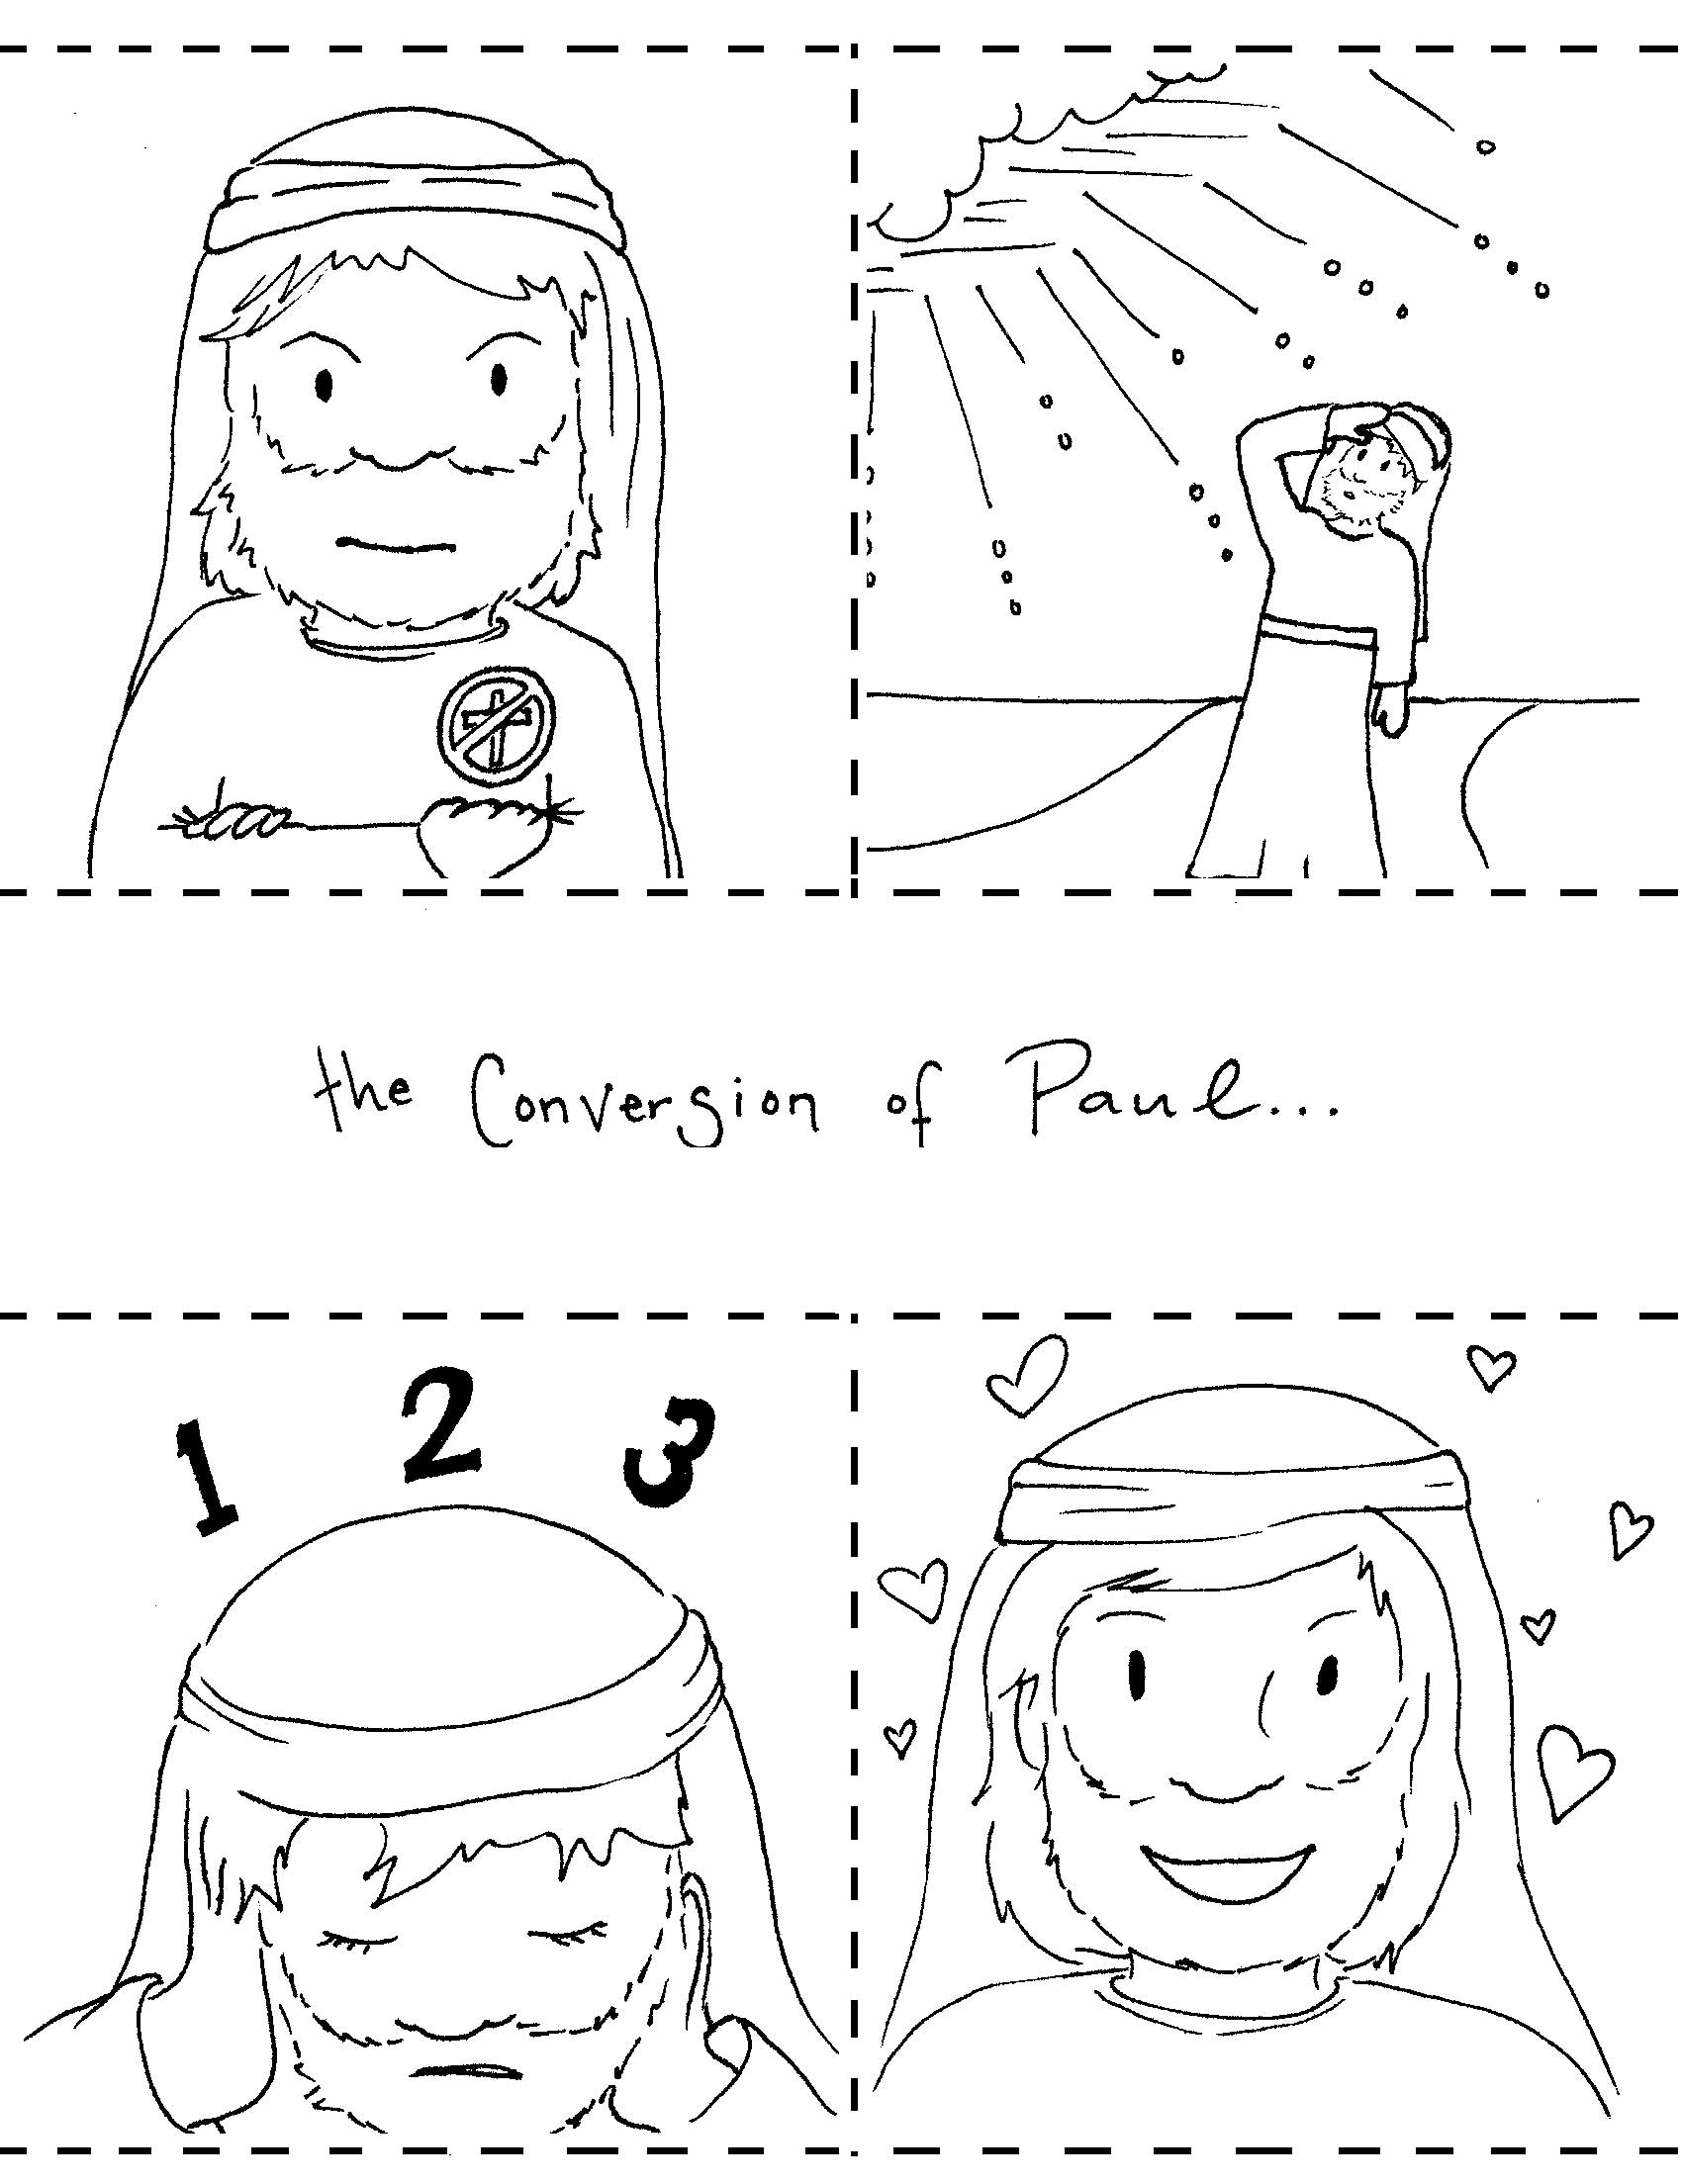 Convert Photo To Coloring Page at GetDrawings.com | Free for ...